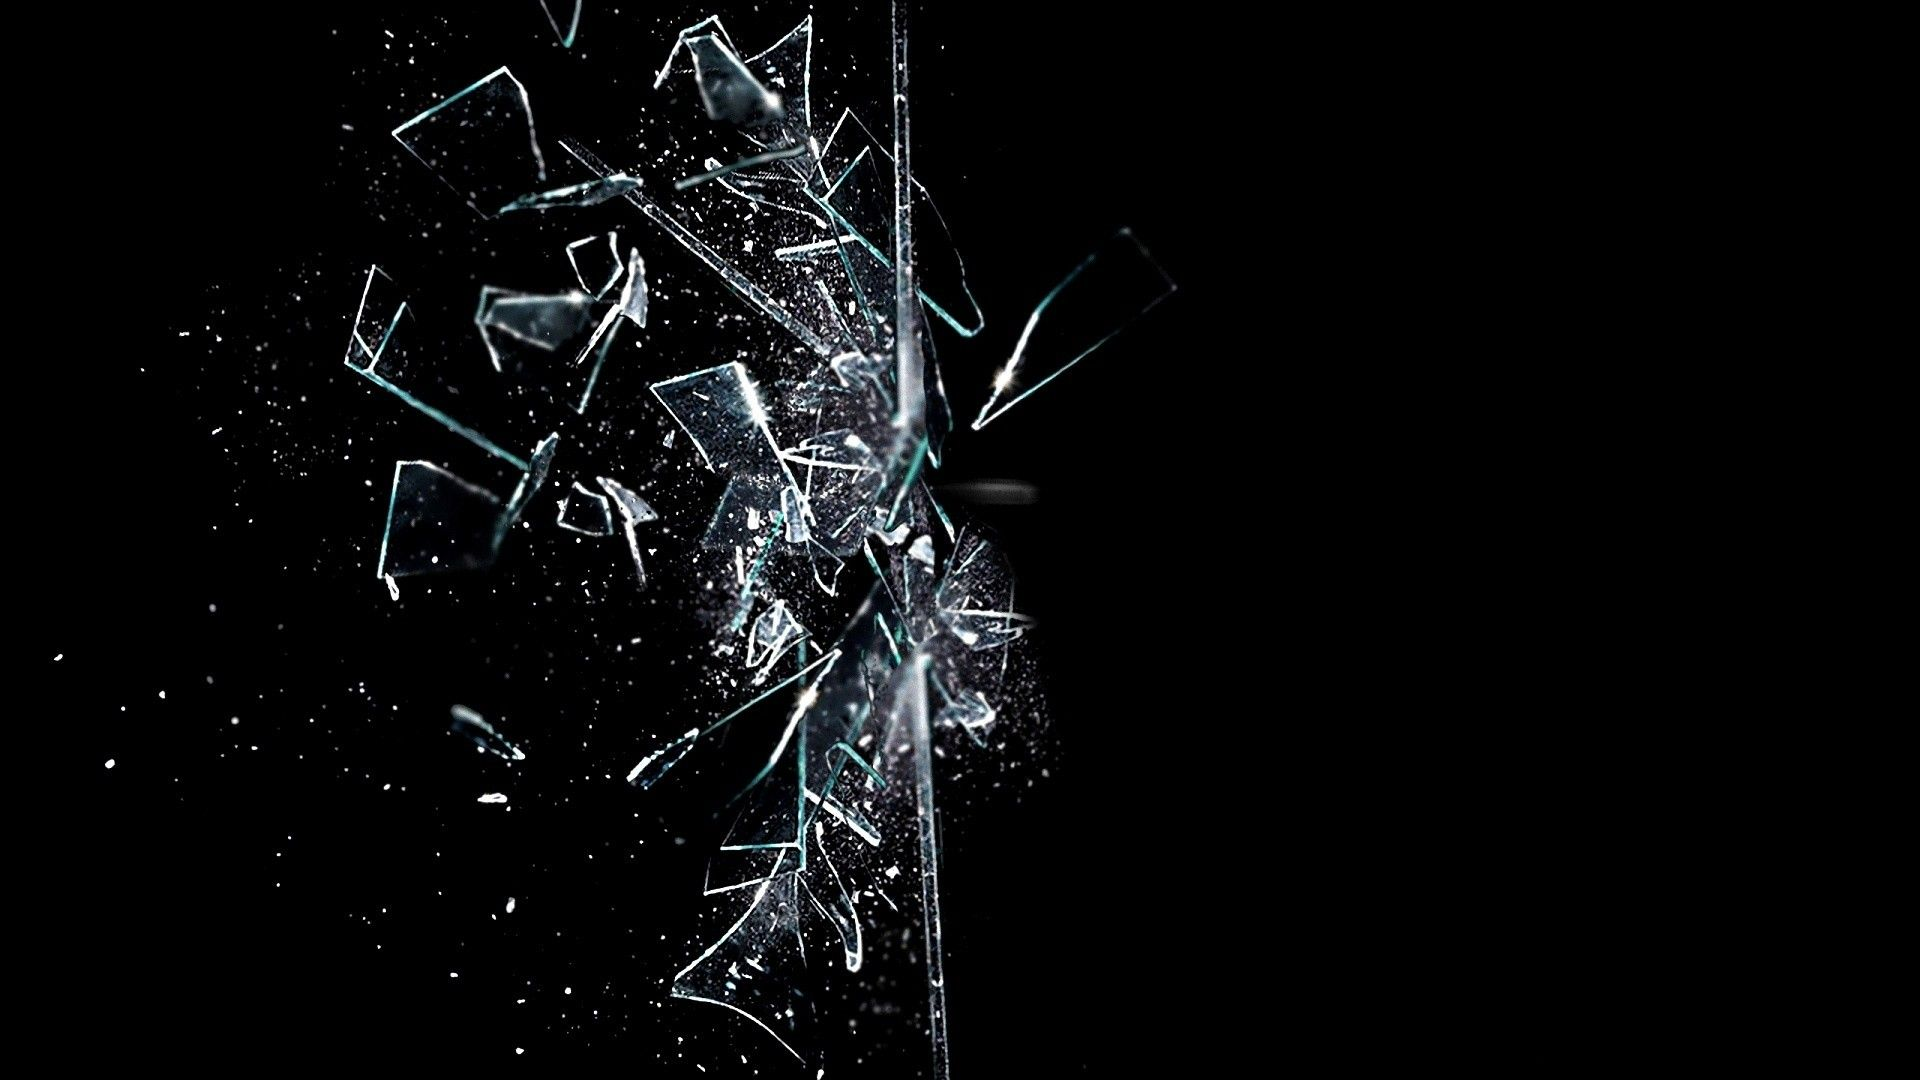 shattered glass wallpaper google search